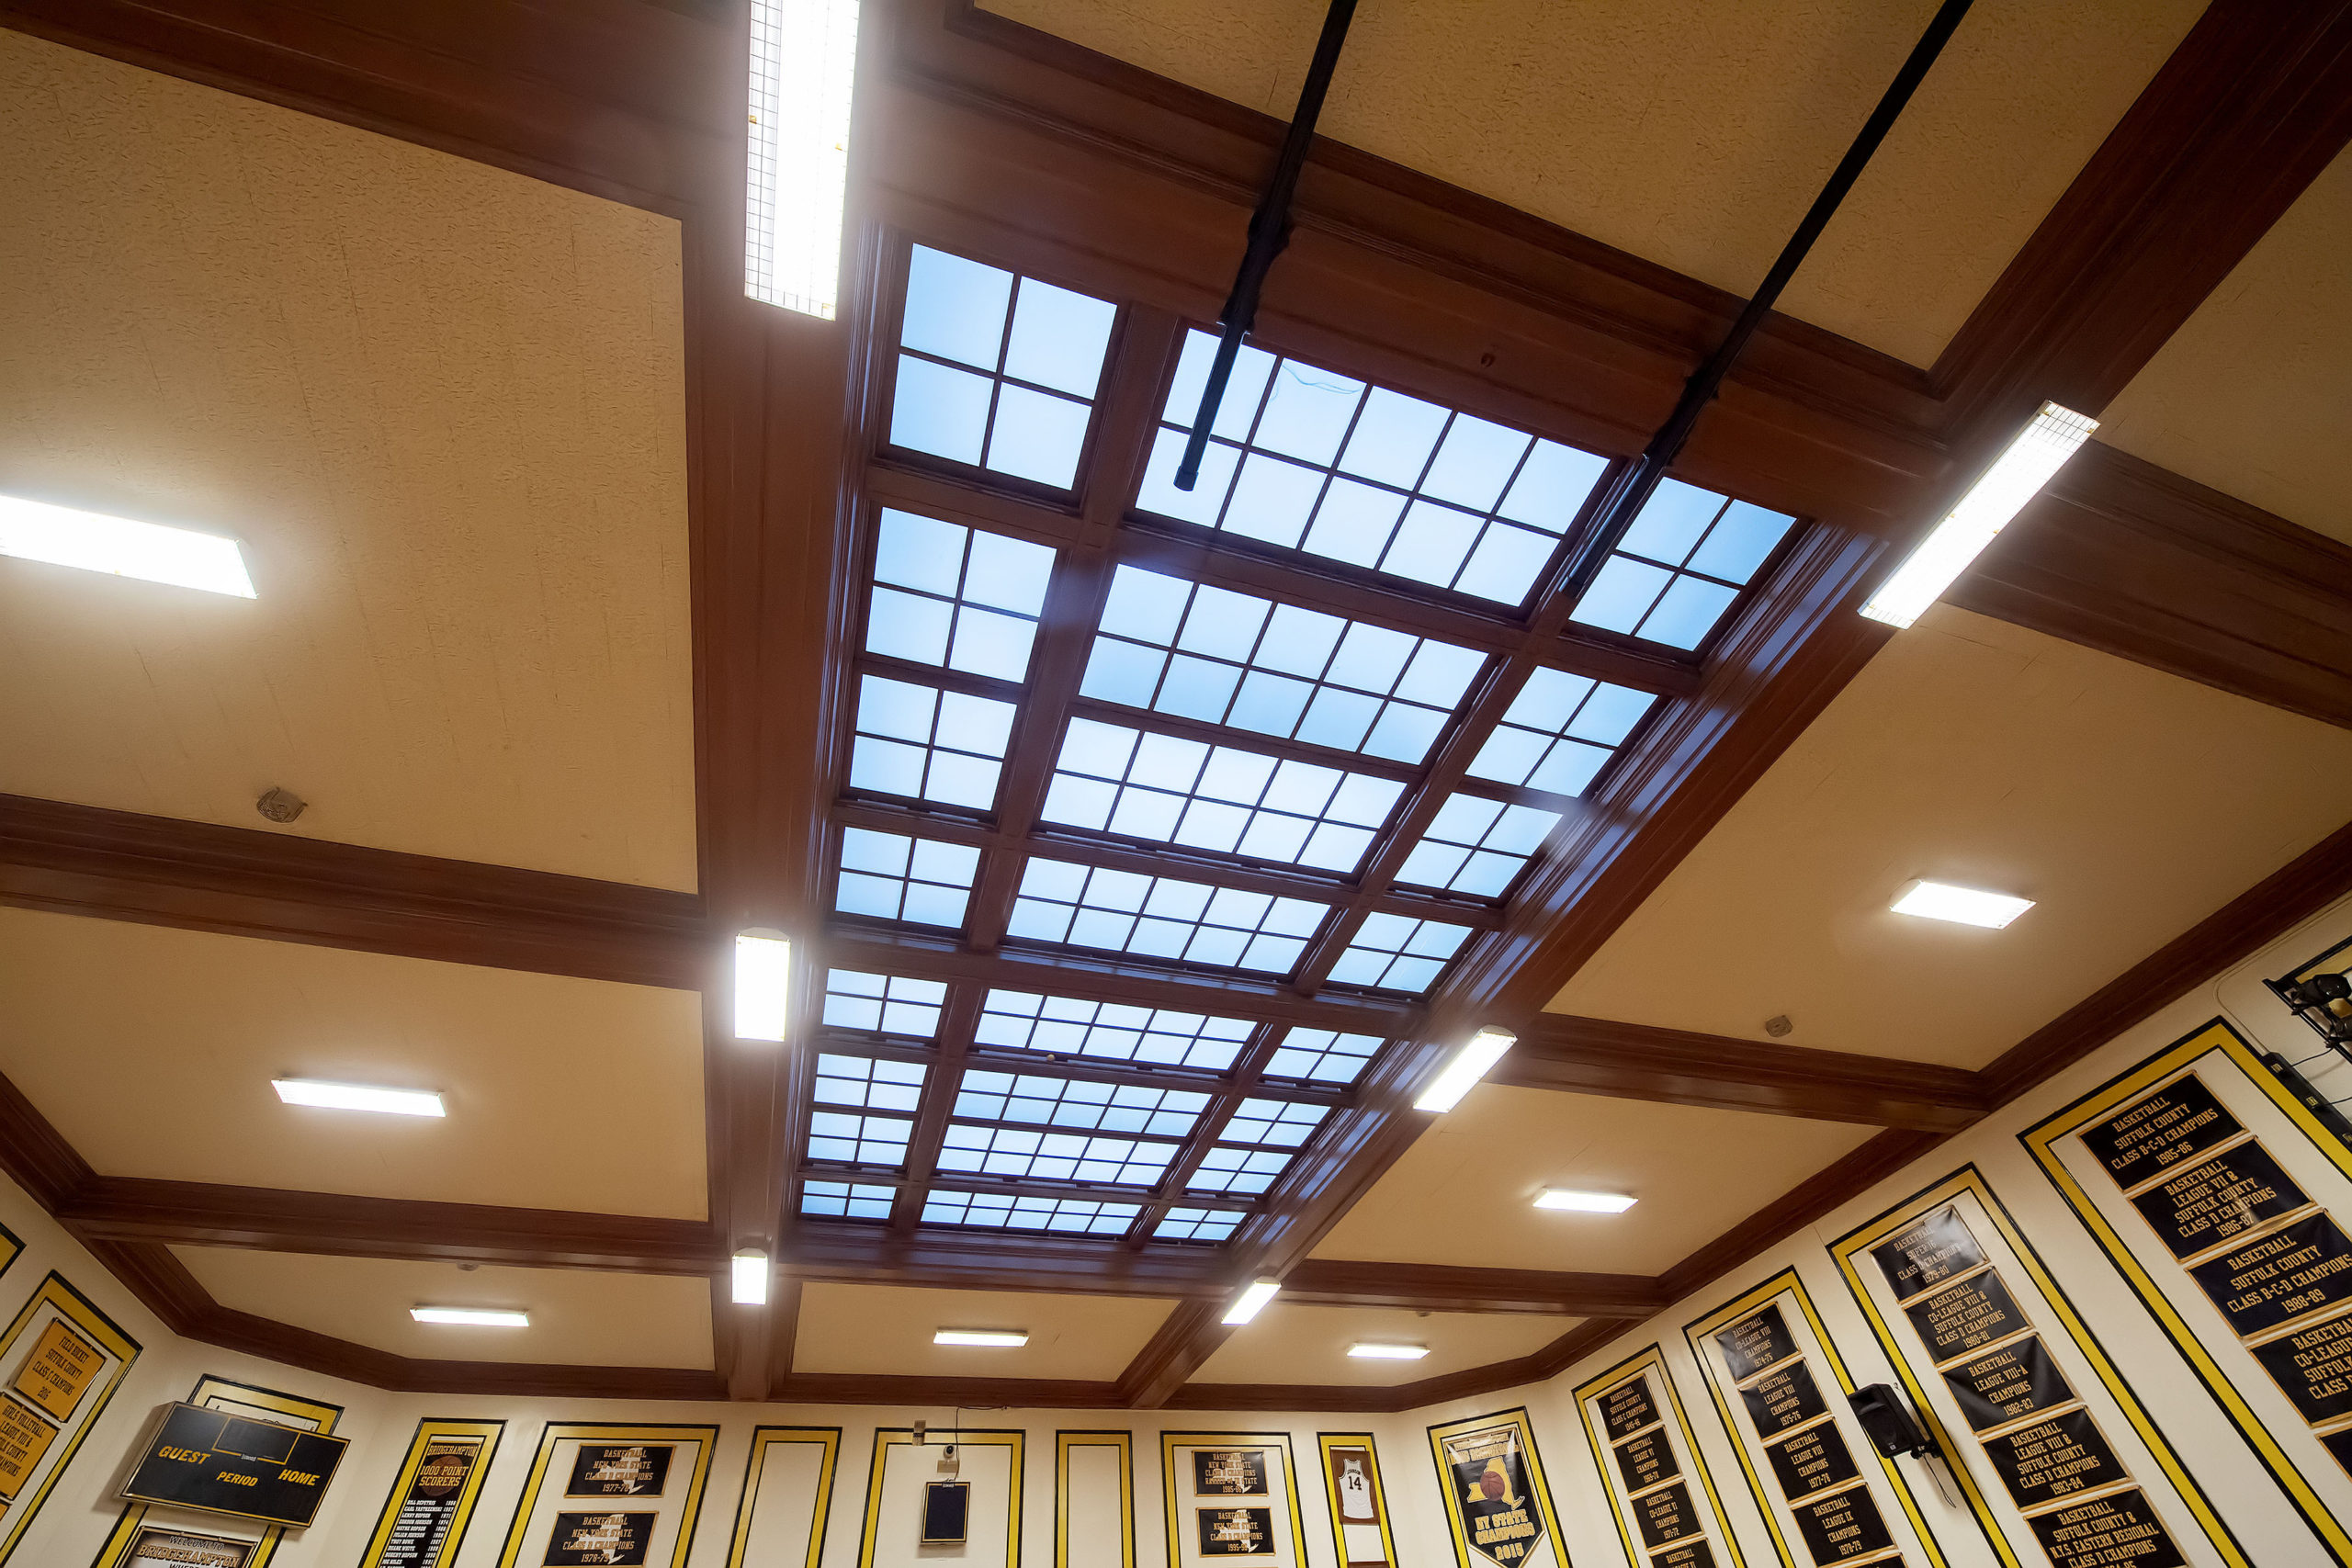 The skylight above The Hive court.